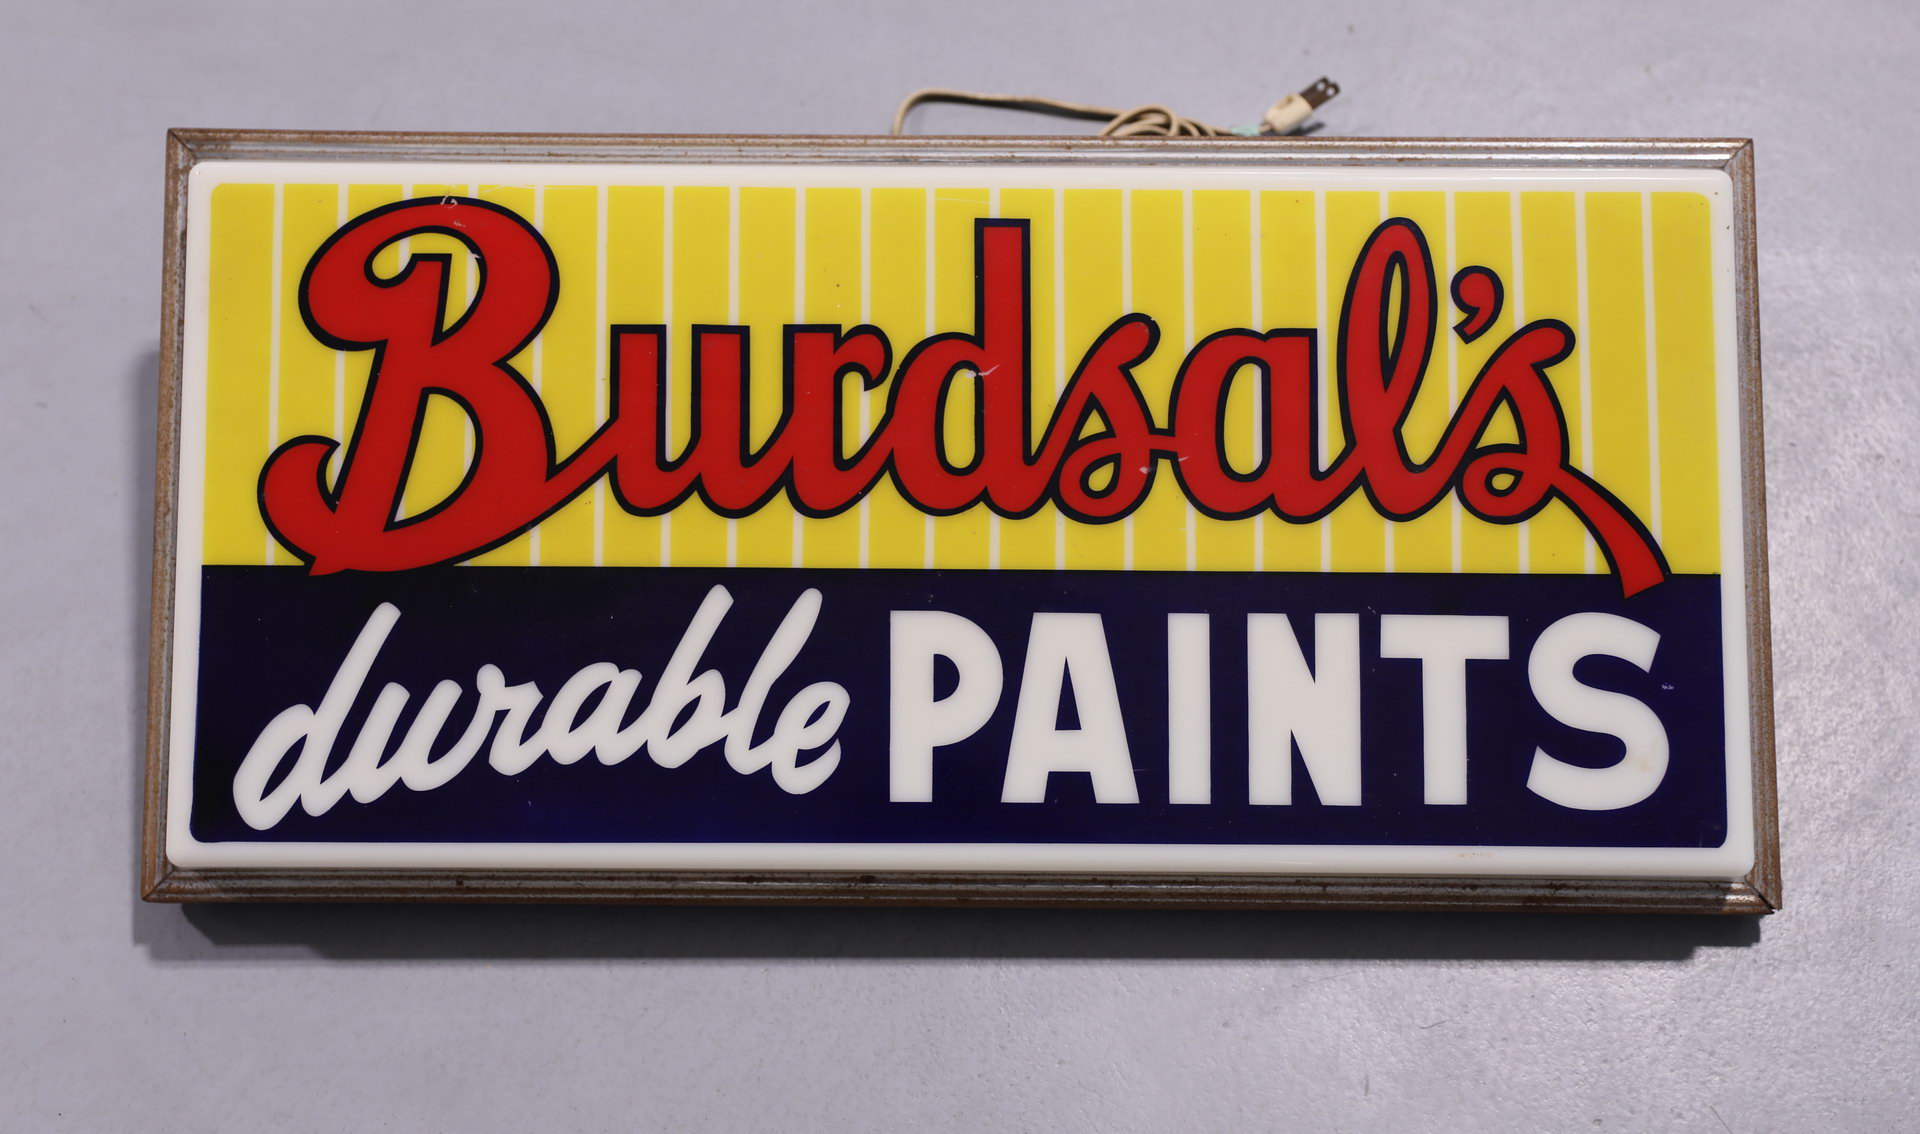 BURDSAL'S Durable Paints Lighted Plastic Front Can Sign